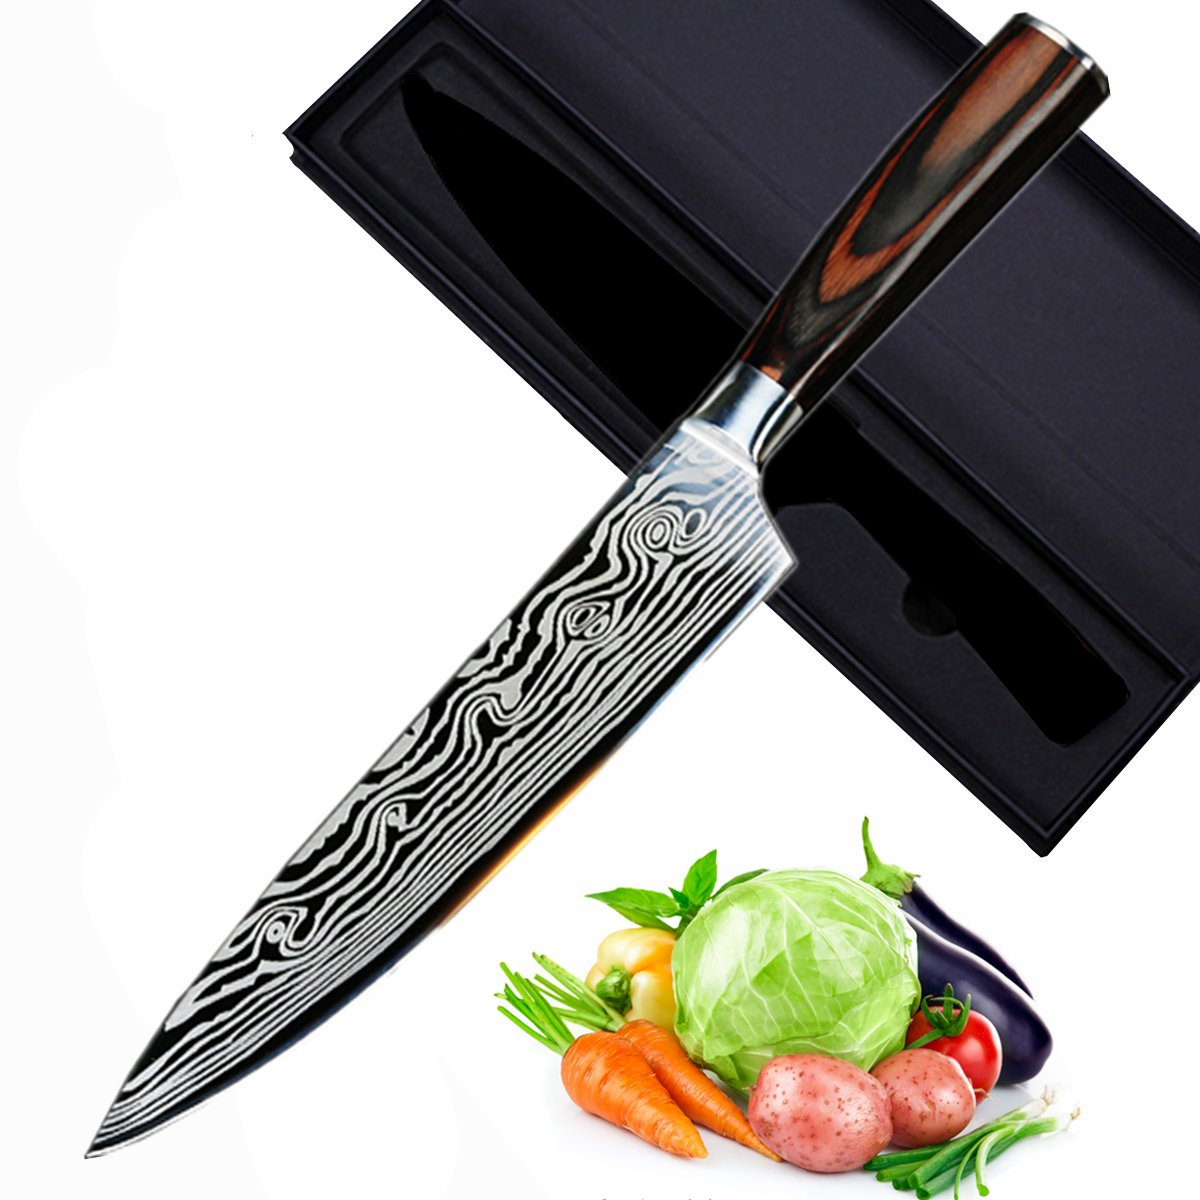 Chef Knife 8.25 inches Stainless Steel Kitchen Knife with Ergonomics Wood Grain Handle, Damascus Pattern Blade and Gift Box